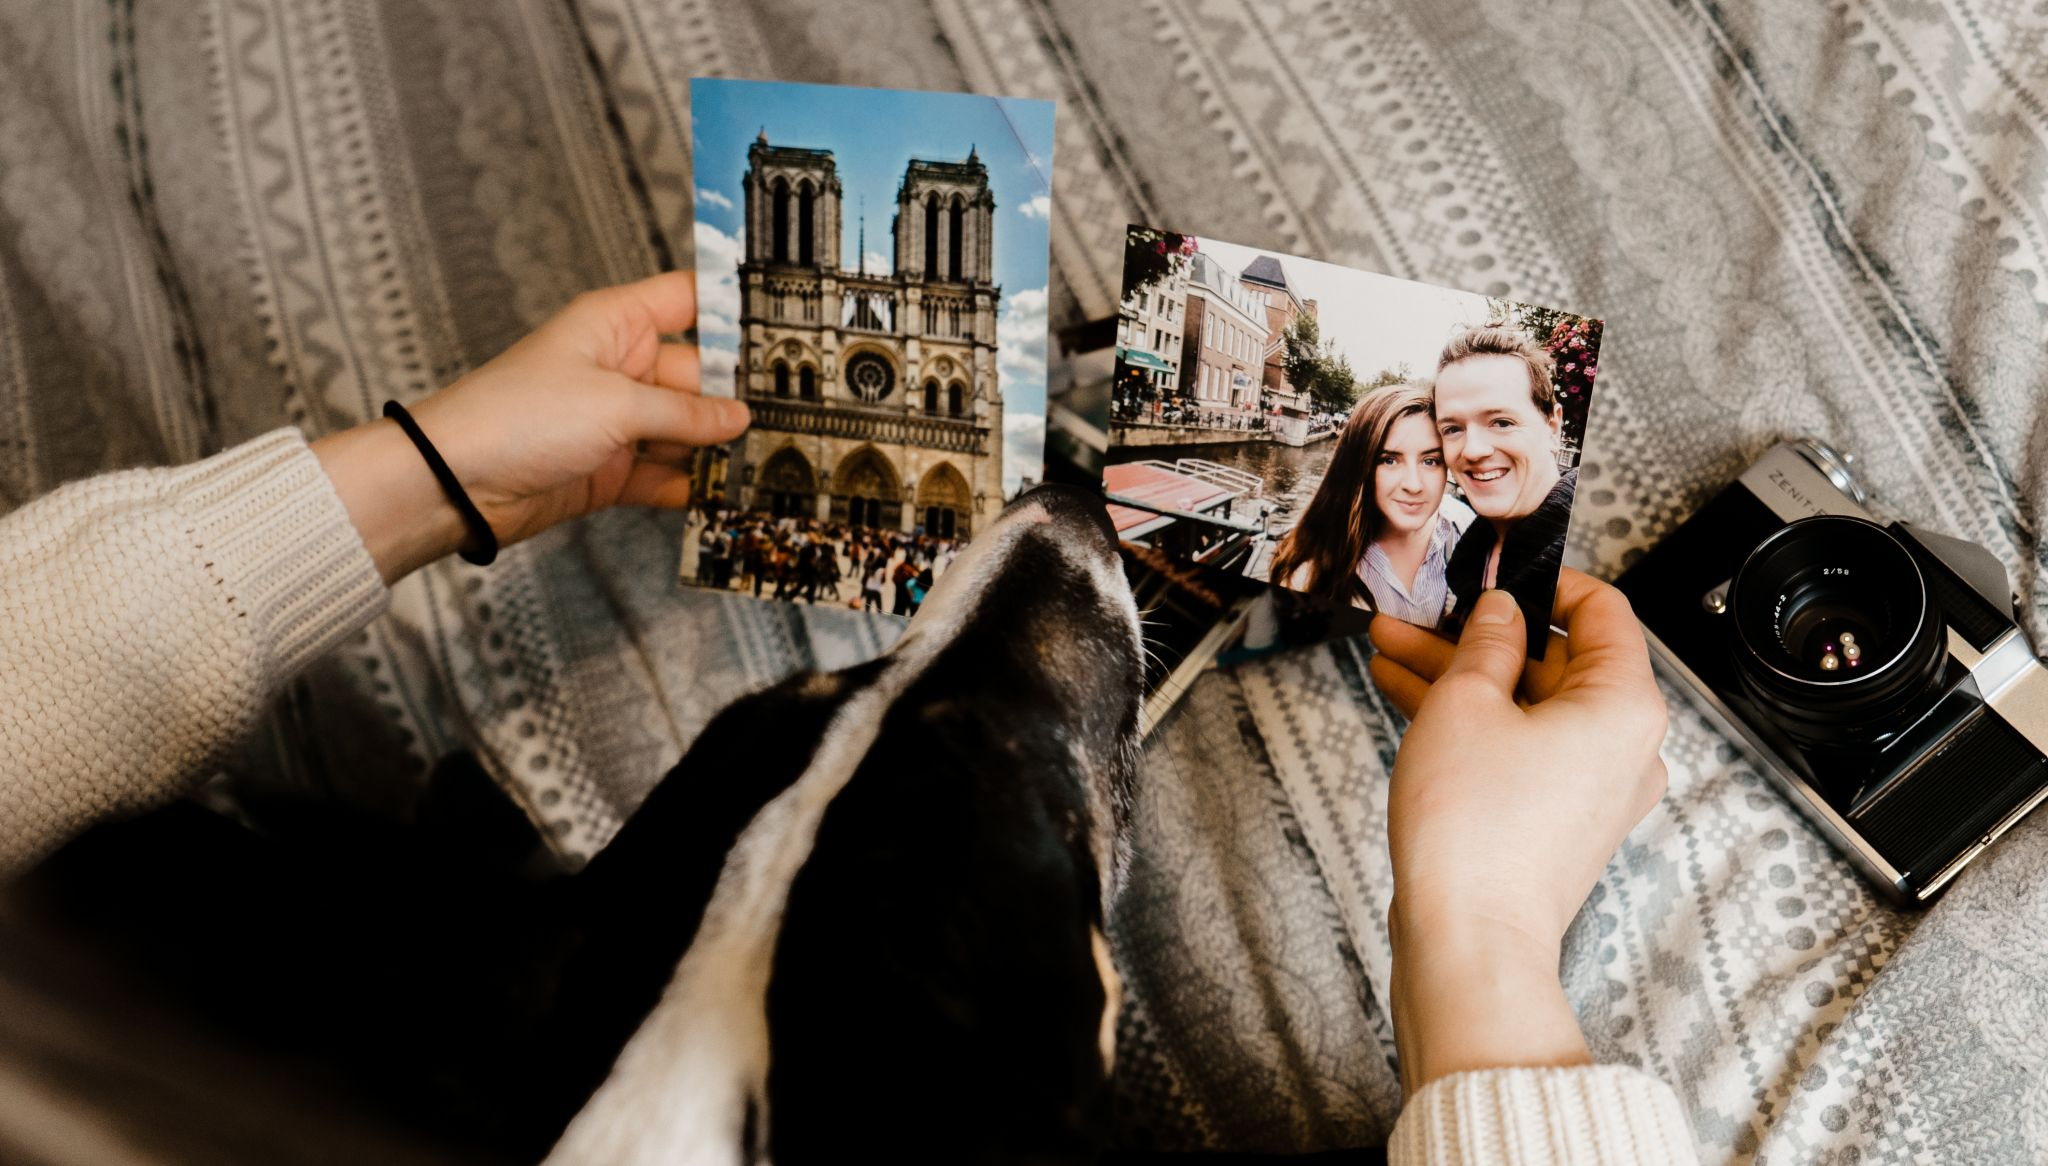 Great Ways to Share Your Photos